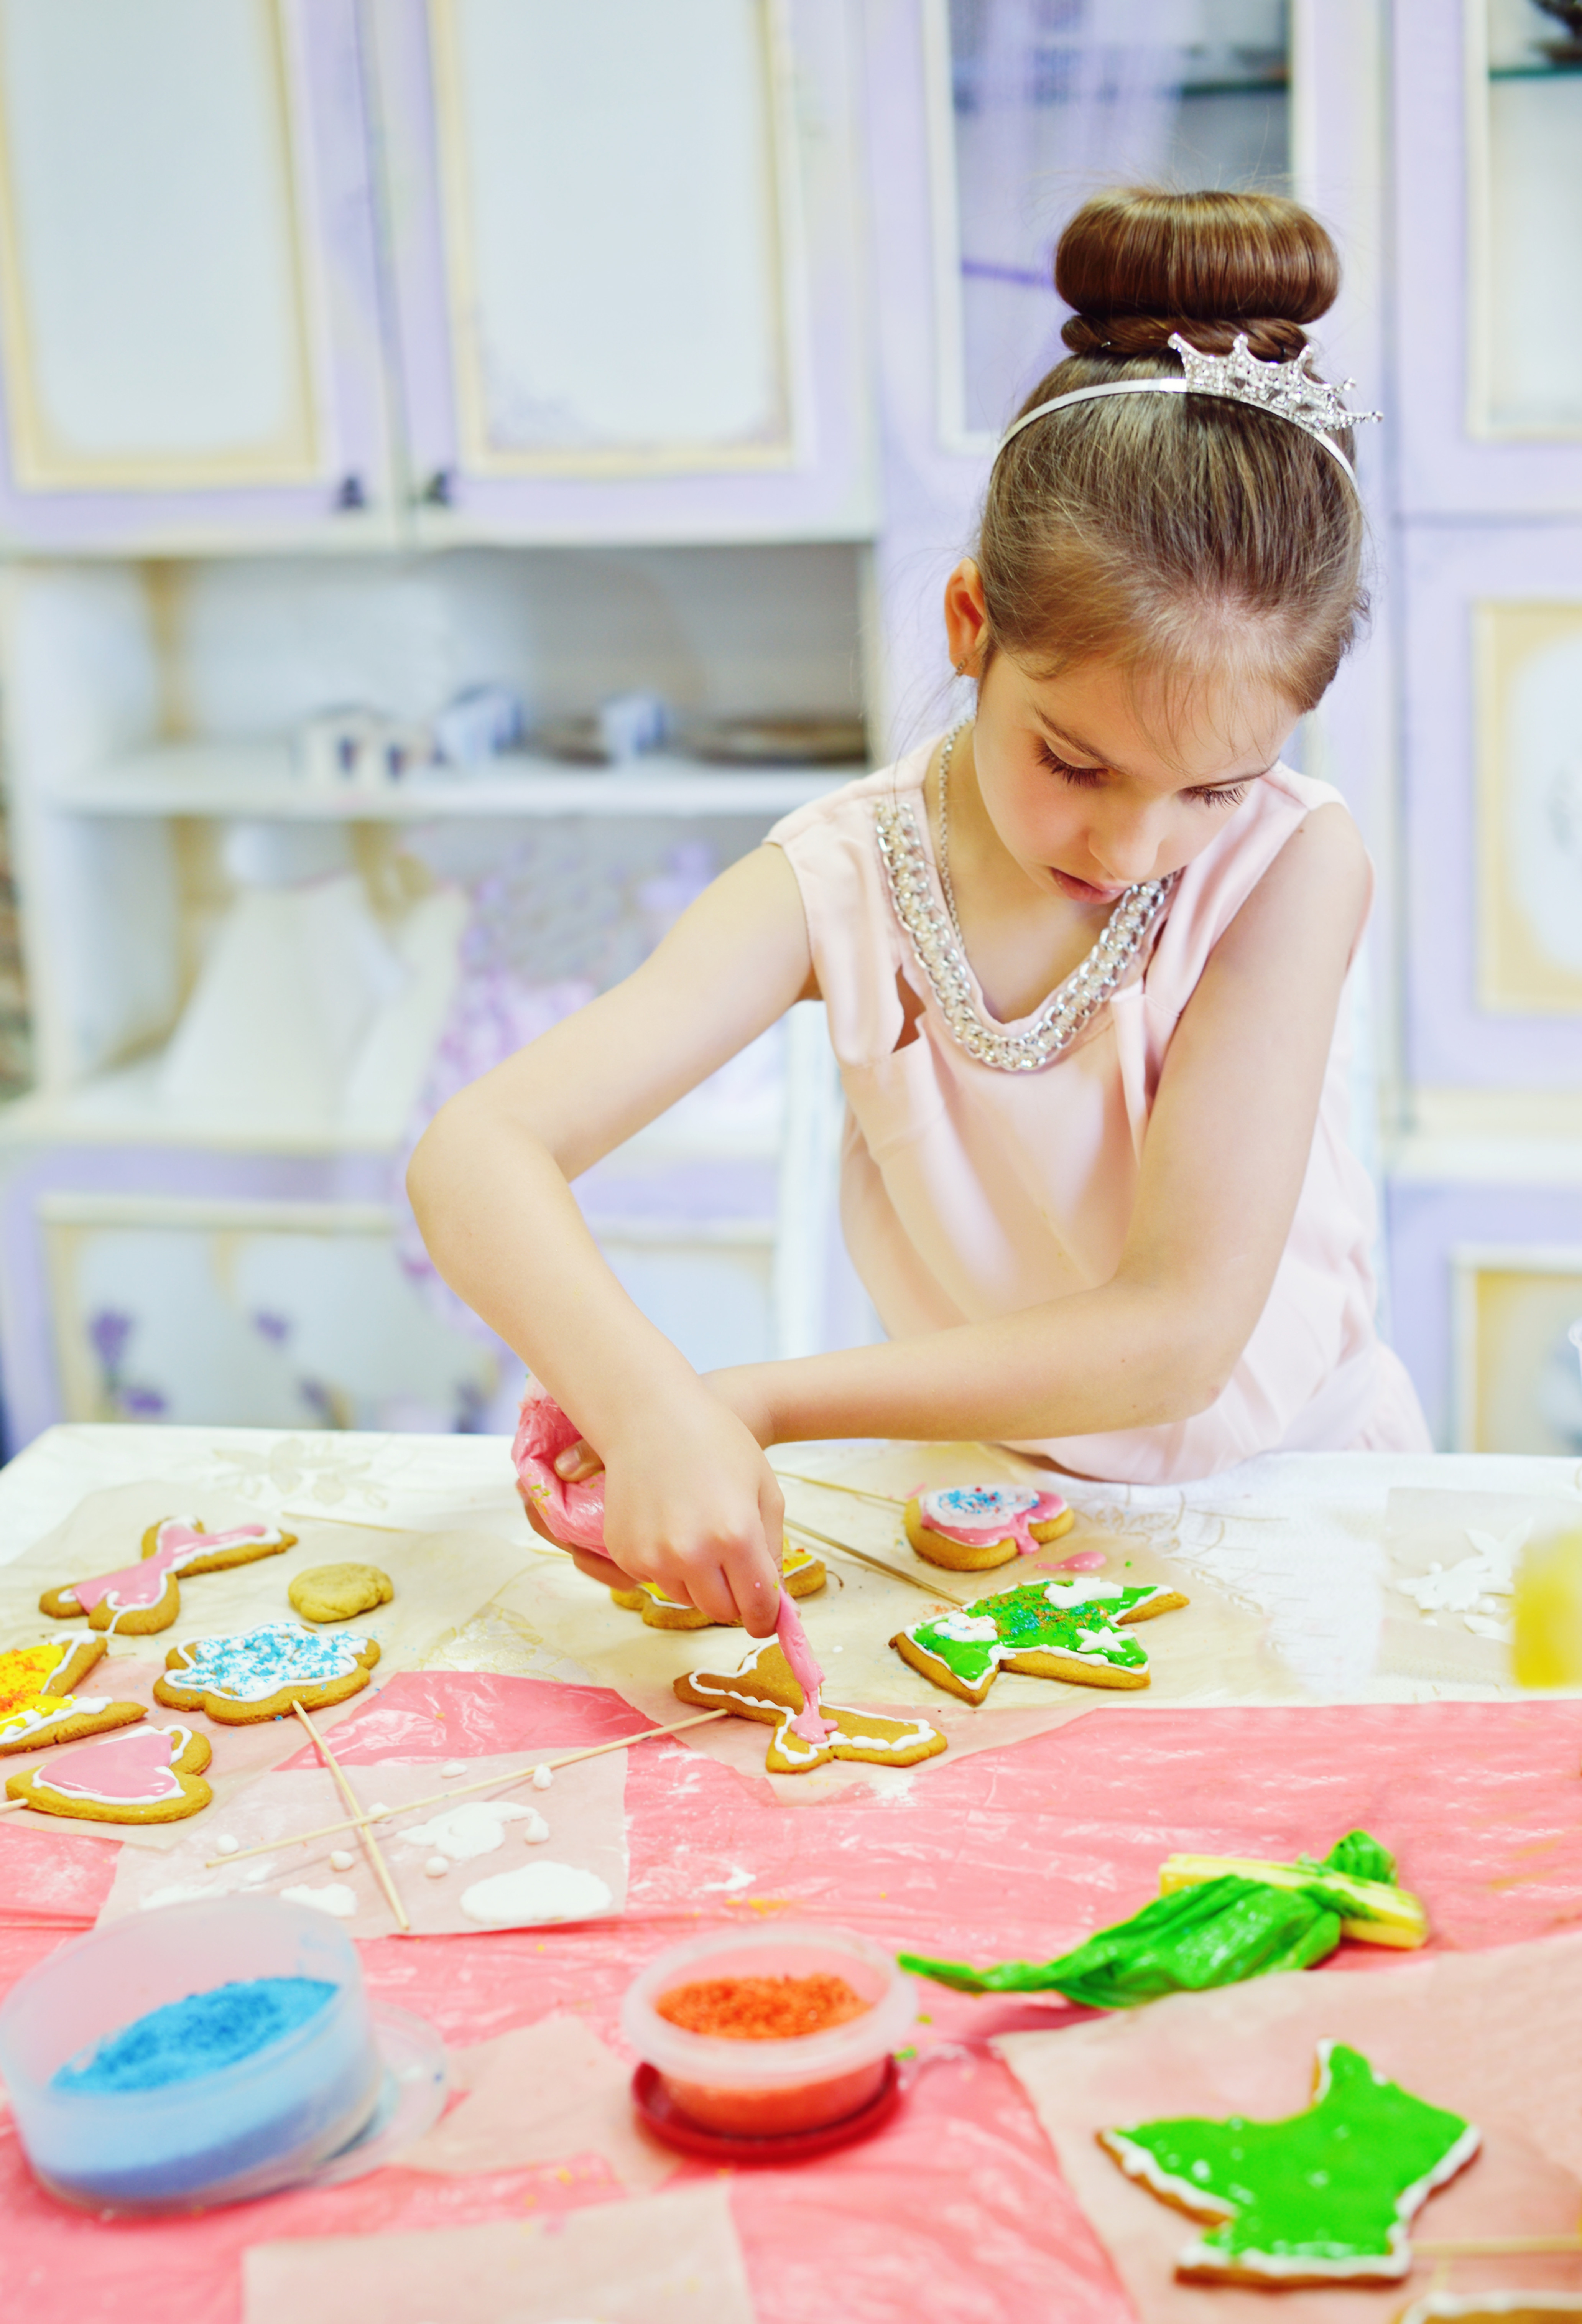 Cookie Decorating Party £15 per person